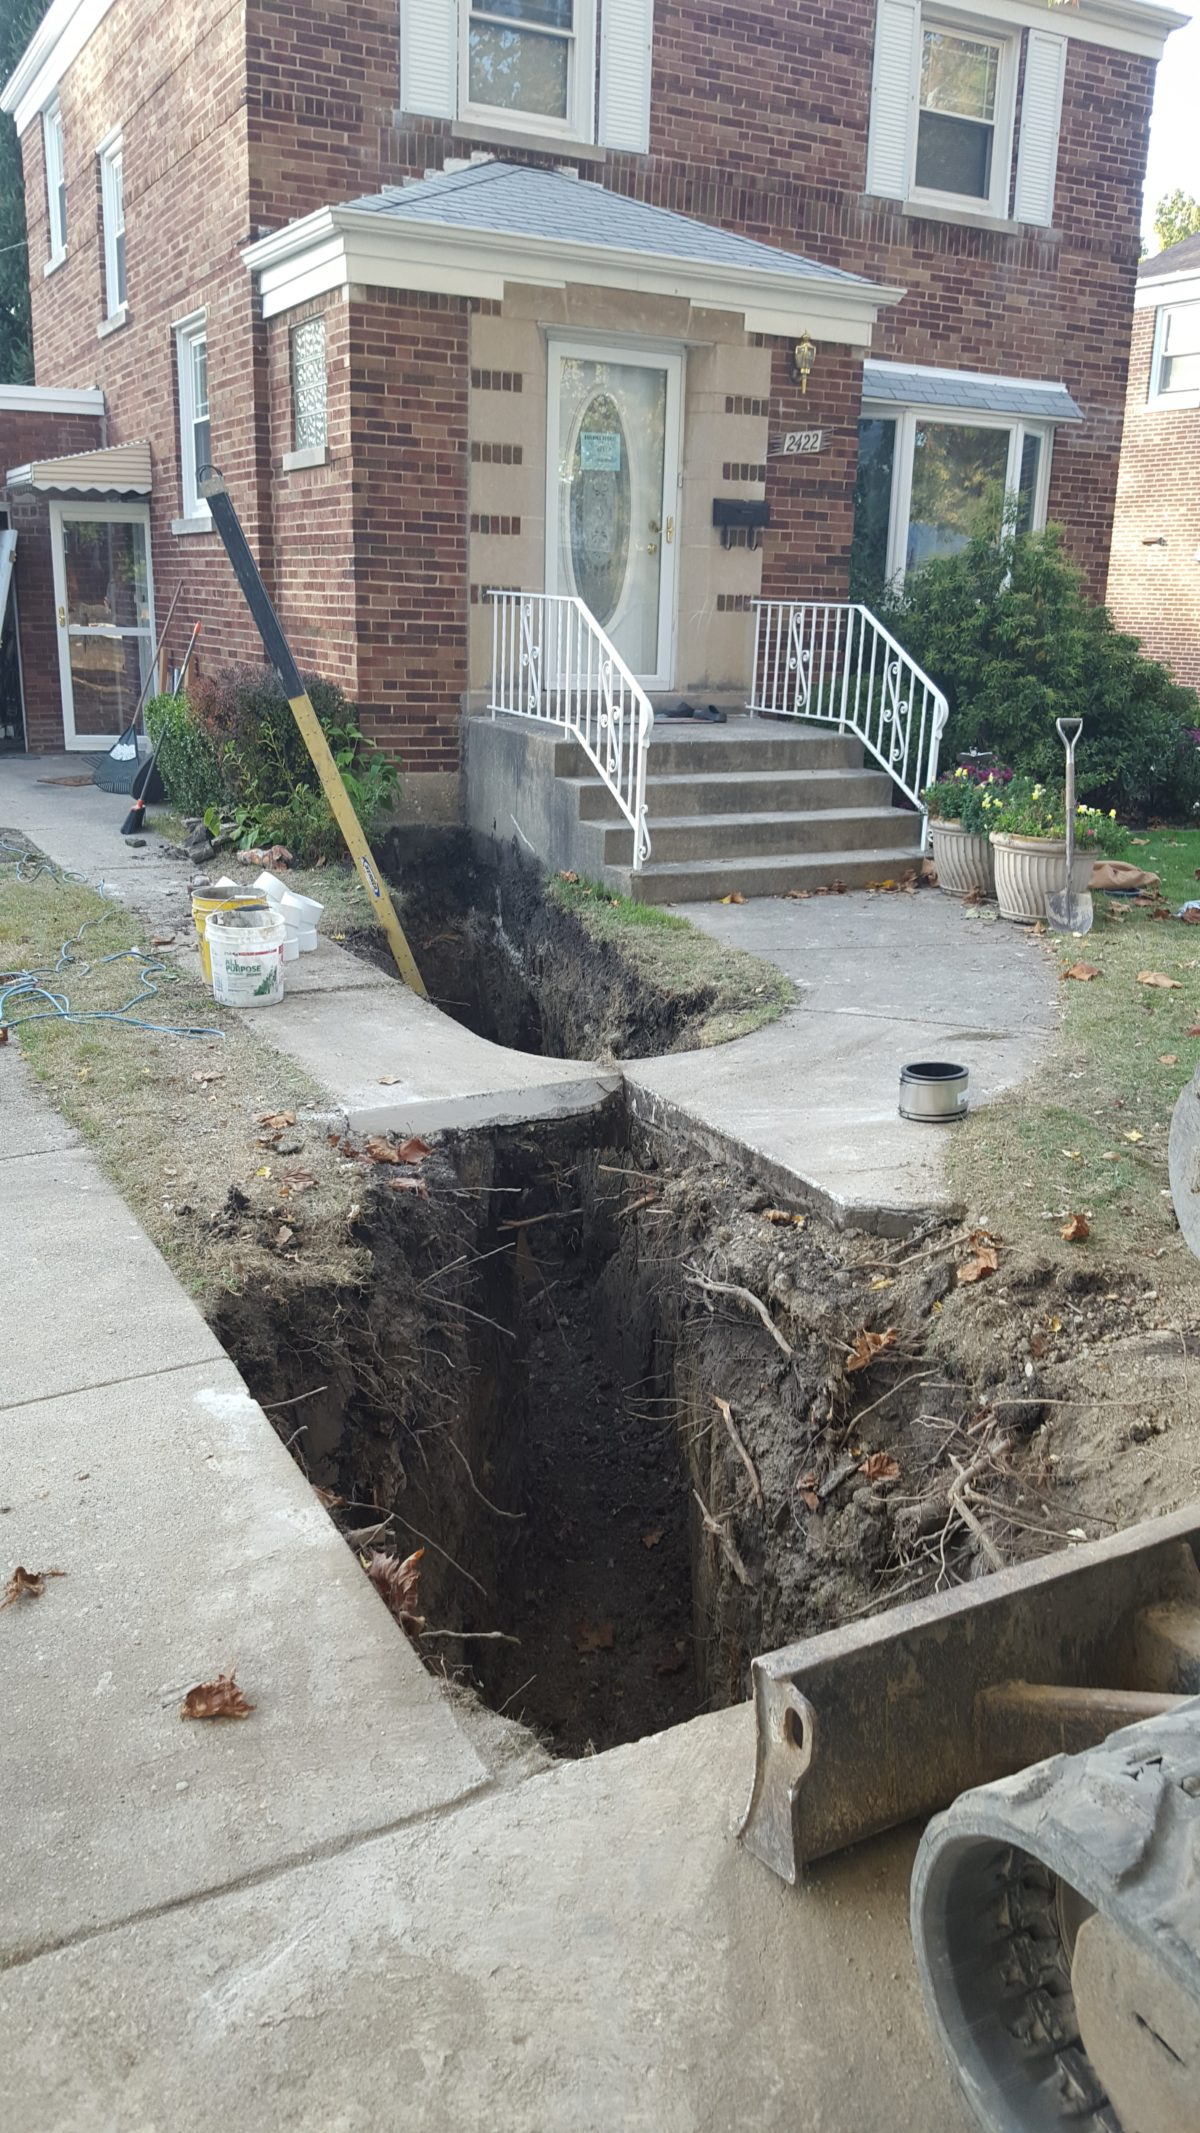 Sewer Replacement In North Riverside, IL Due To Tree Roots